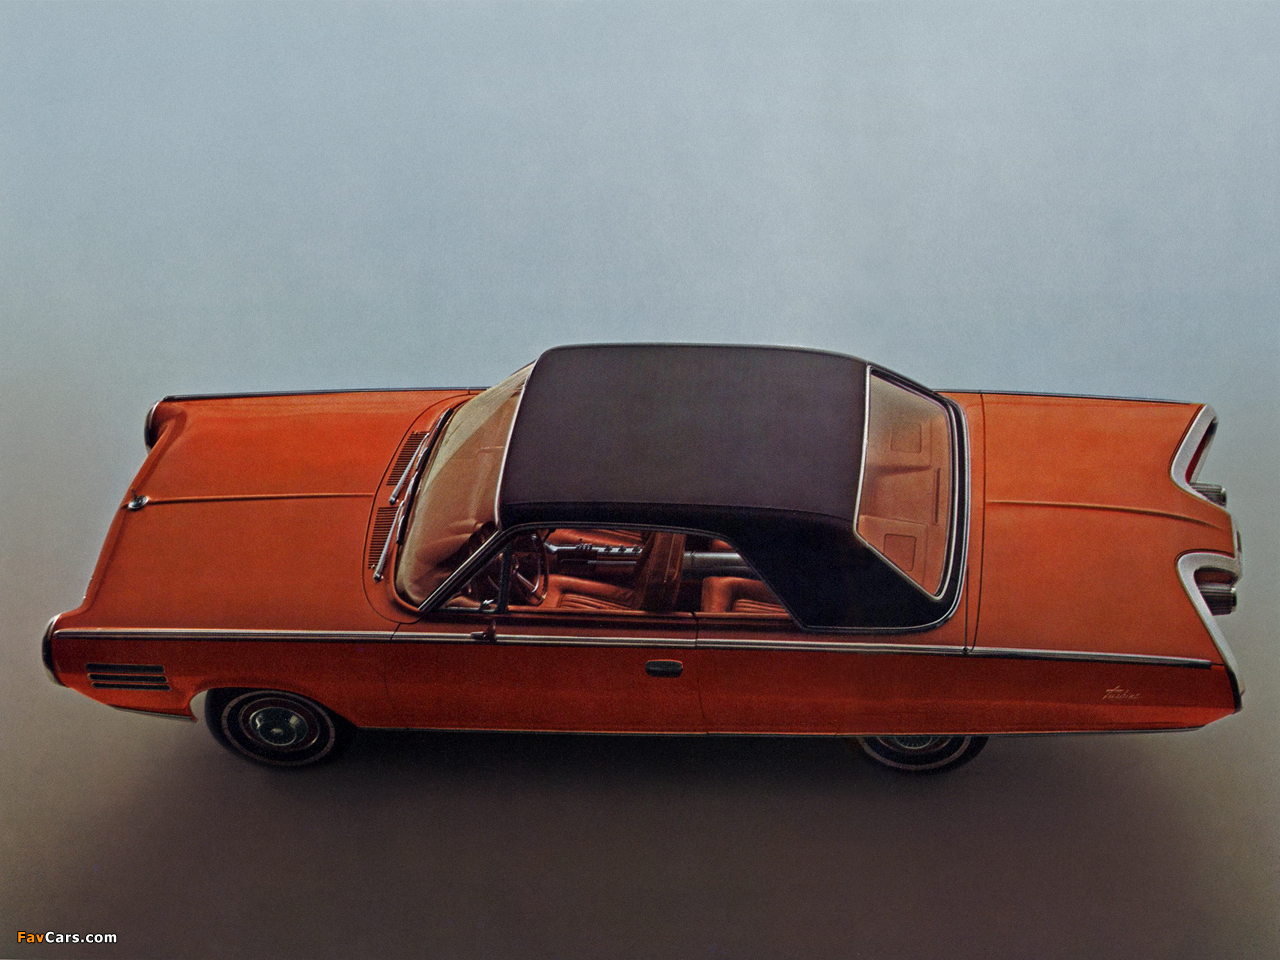 Chrysler Turbine Car 1963 wallpapers (1280 x 960)